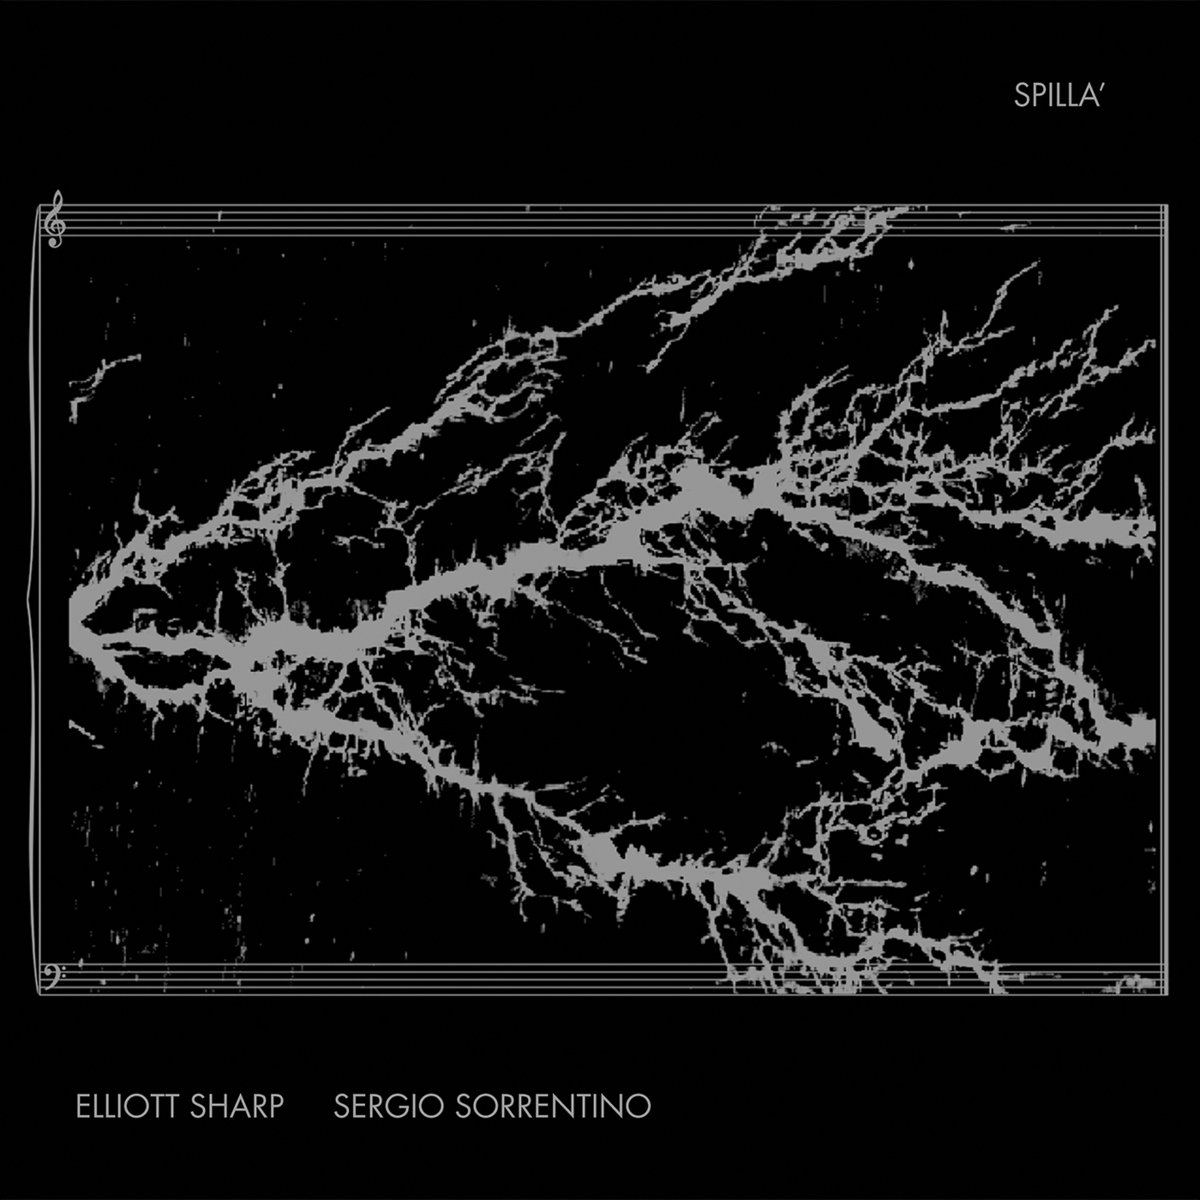 sergio sorrentino - elliott sharp - Spillà